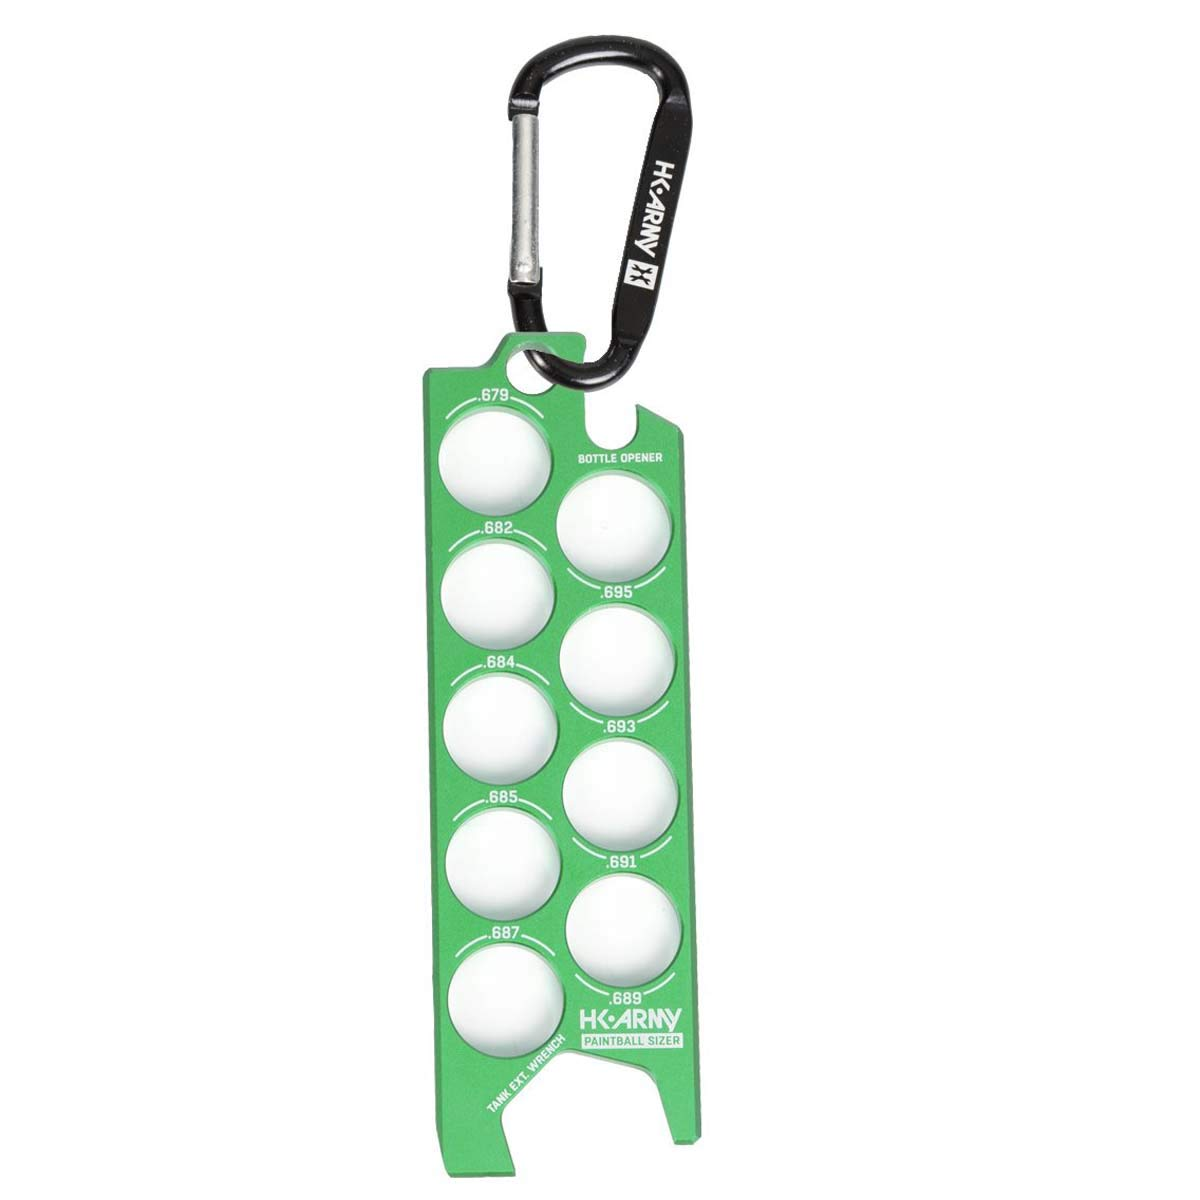 HK Army Ball Sizer Guide (Neon Green) by HK Army